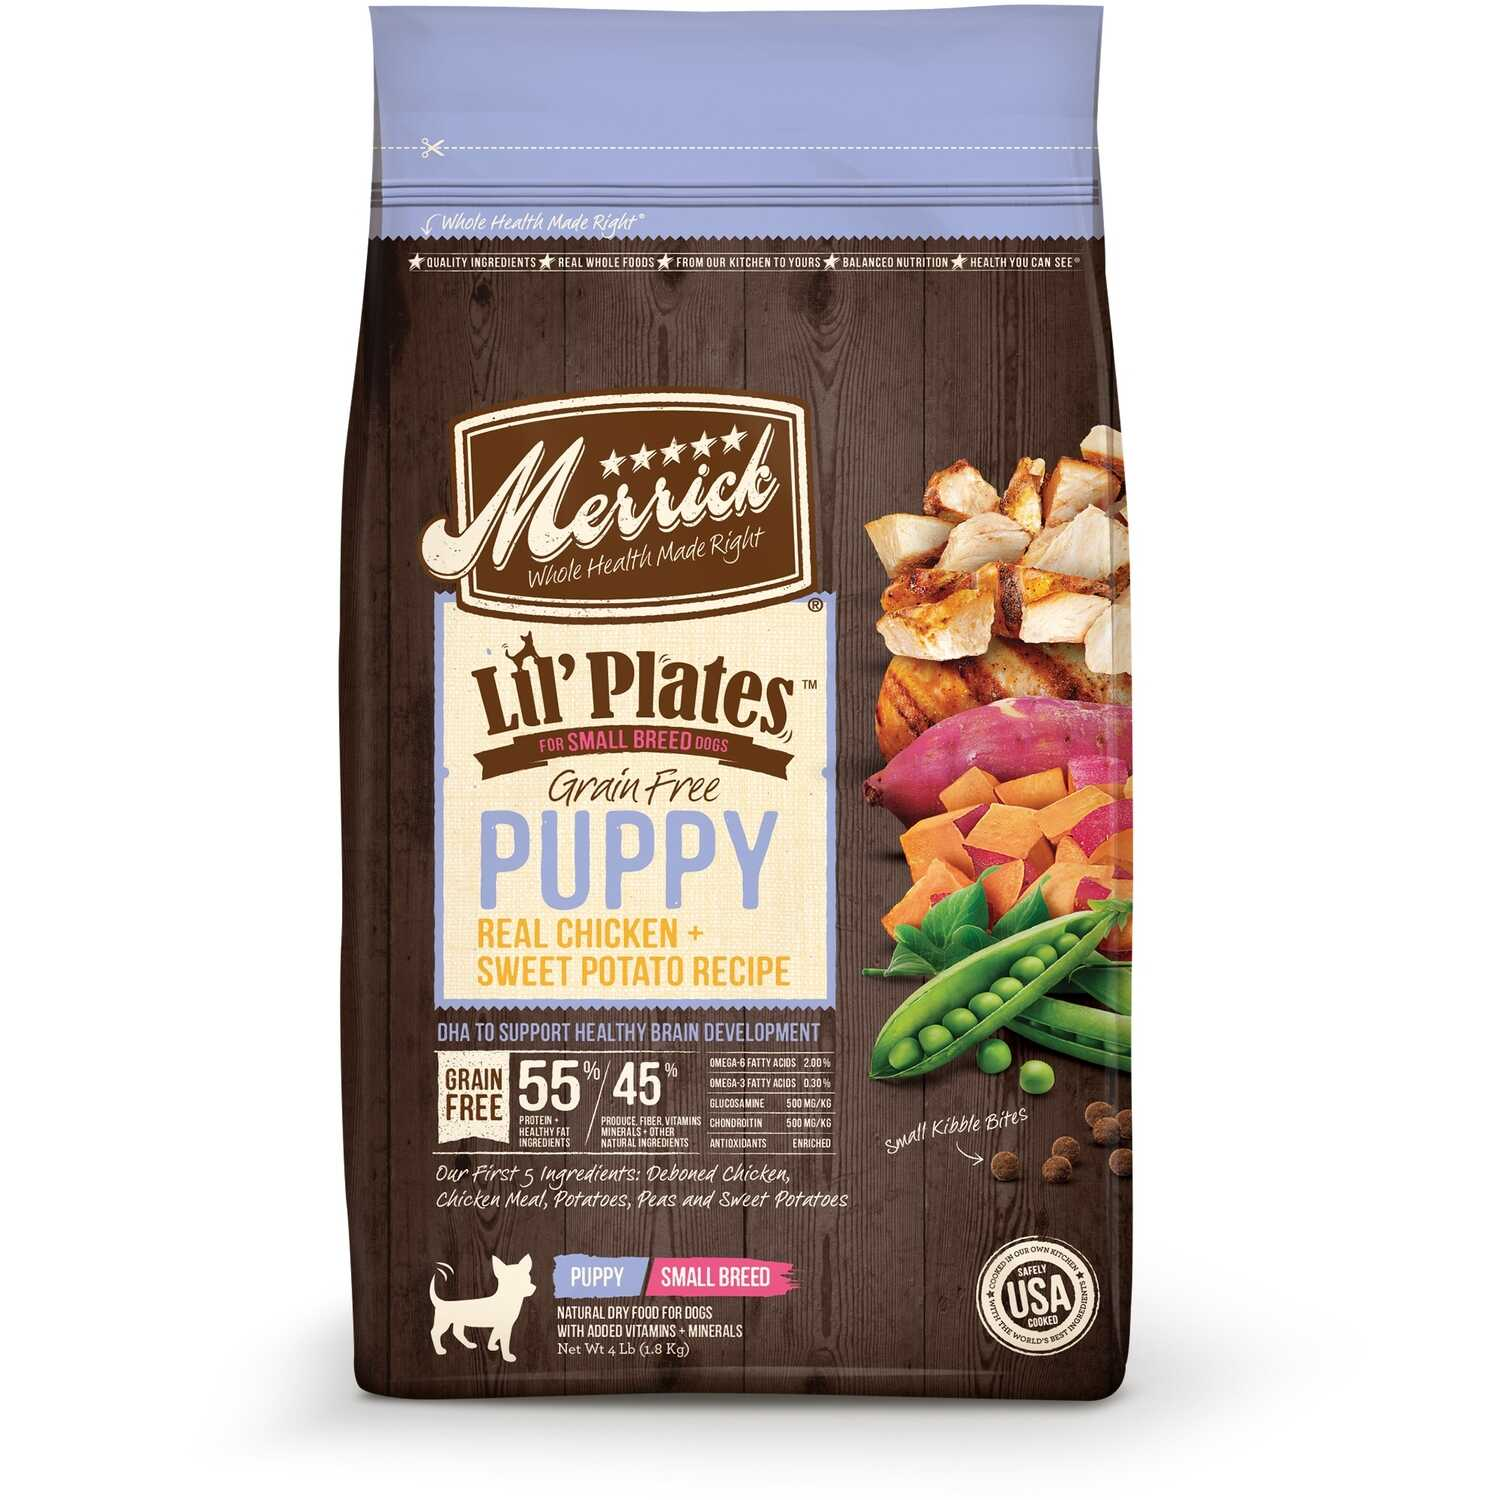 Merrick  Lil Plates  Chicken and Sweet Potato  Dry  Dog  Food  Grain Free 4 lb.